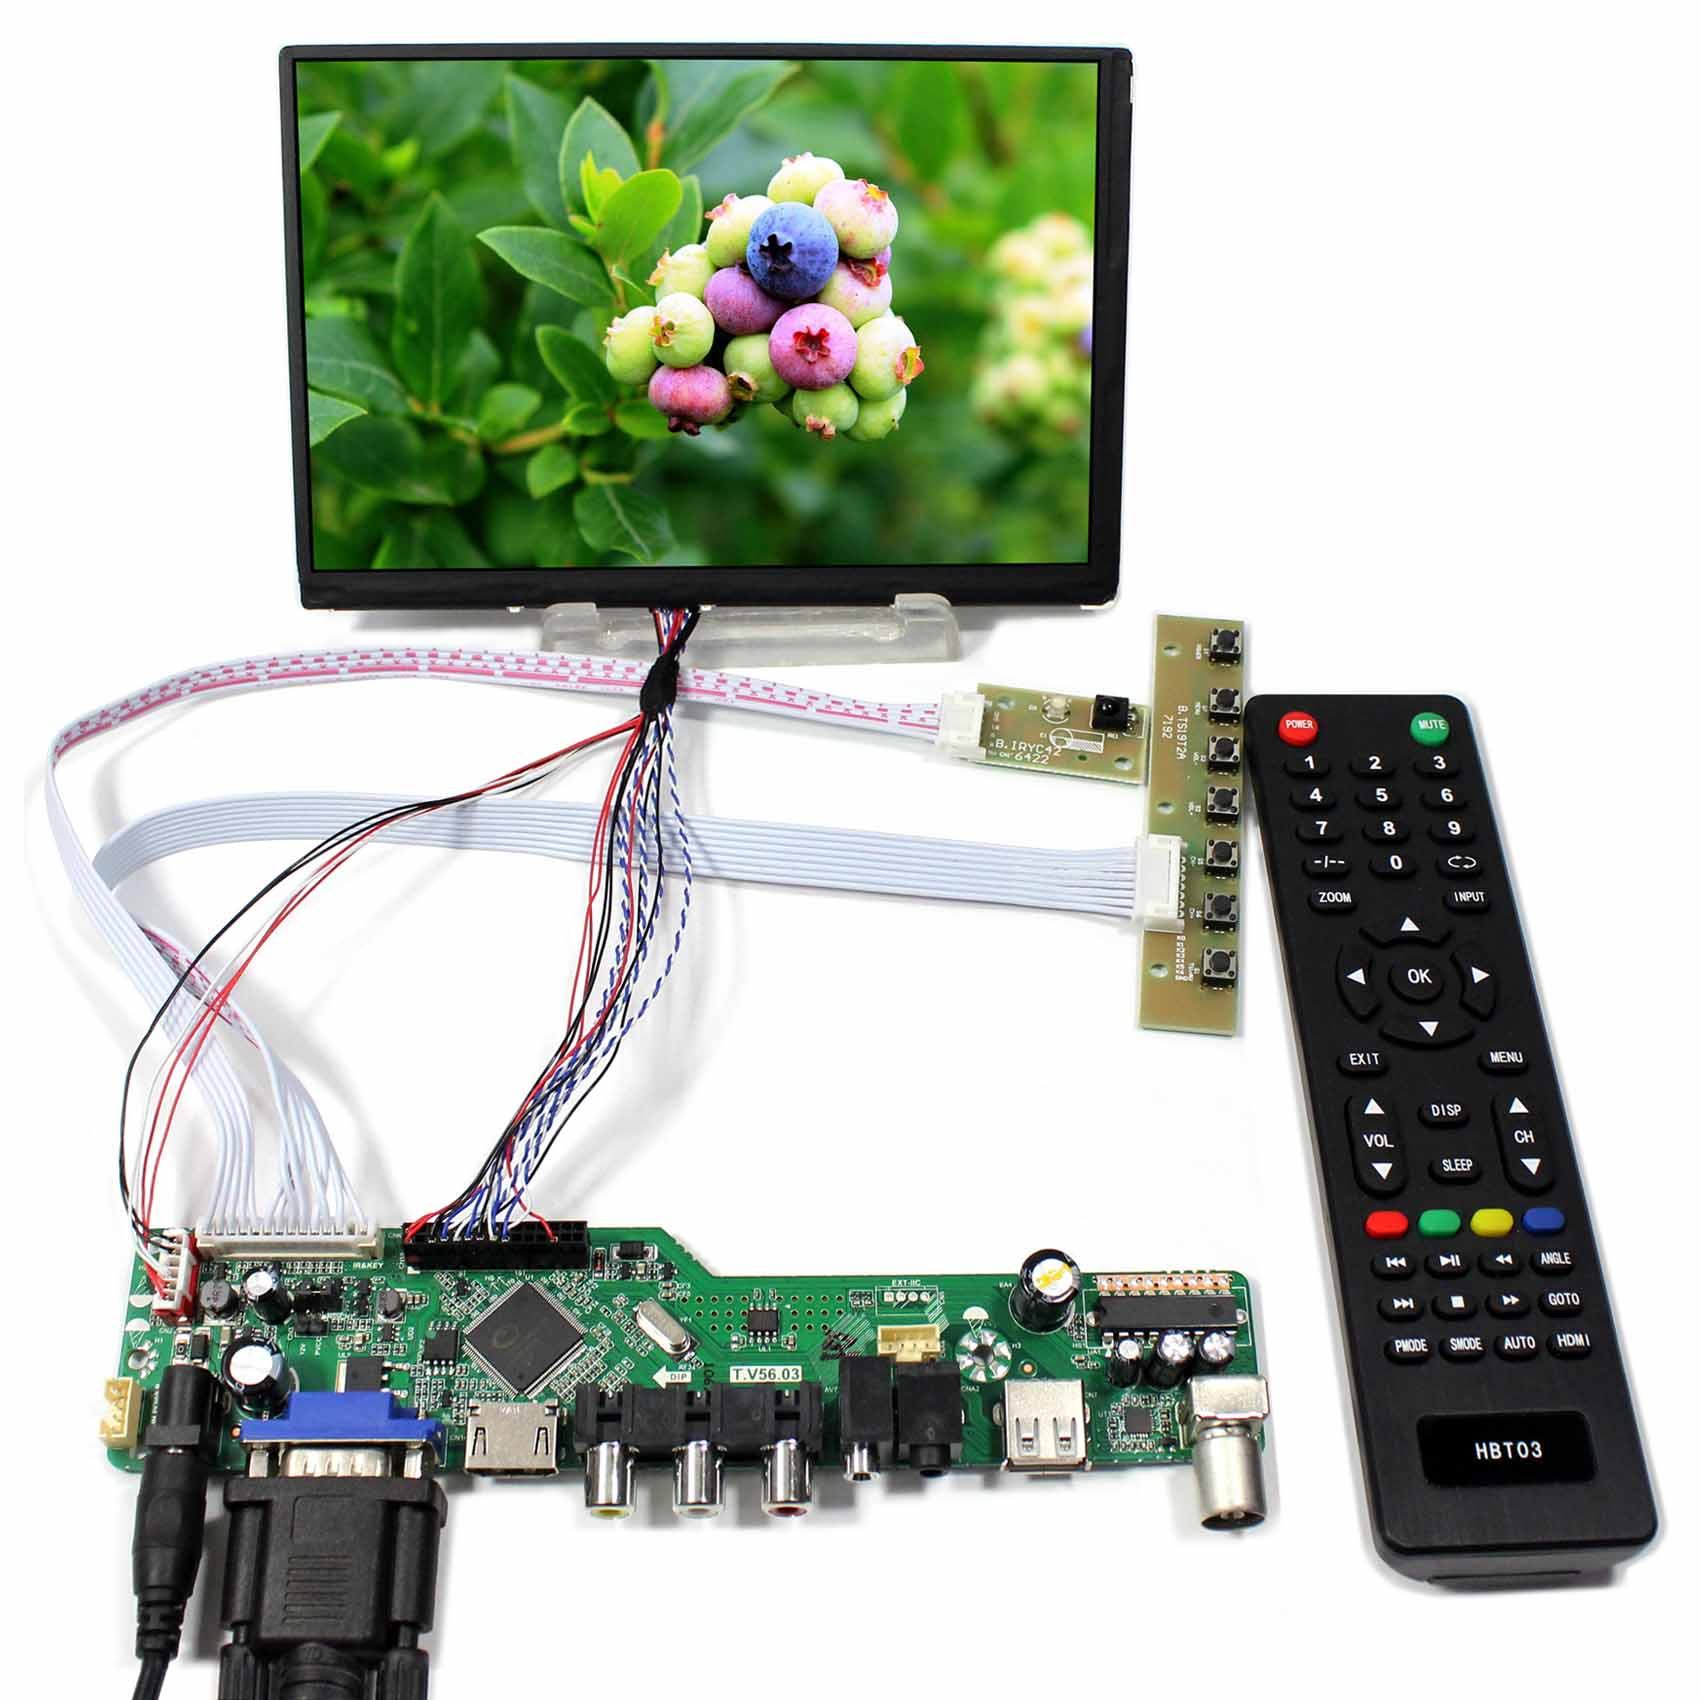 TV PC HDMI CVBS RF USB AUDIO LCD driver Board with 7inch N070ICG-LD1 1280x800 39pin lcd screenTV PC HDMI CVBS RF USB AUDIO LCD driver Board with 7inch N070ICG-LD1 1280x800 39pin lcd screen